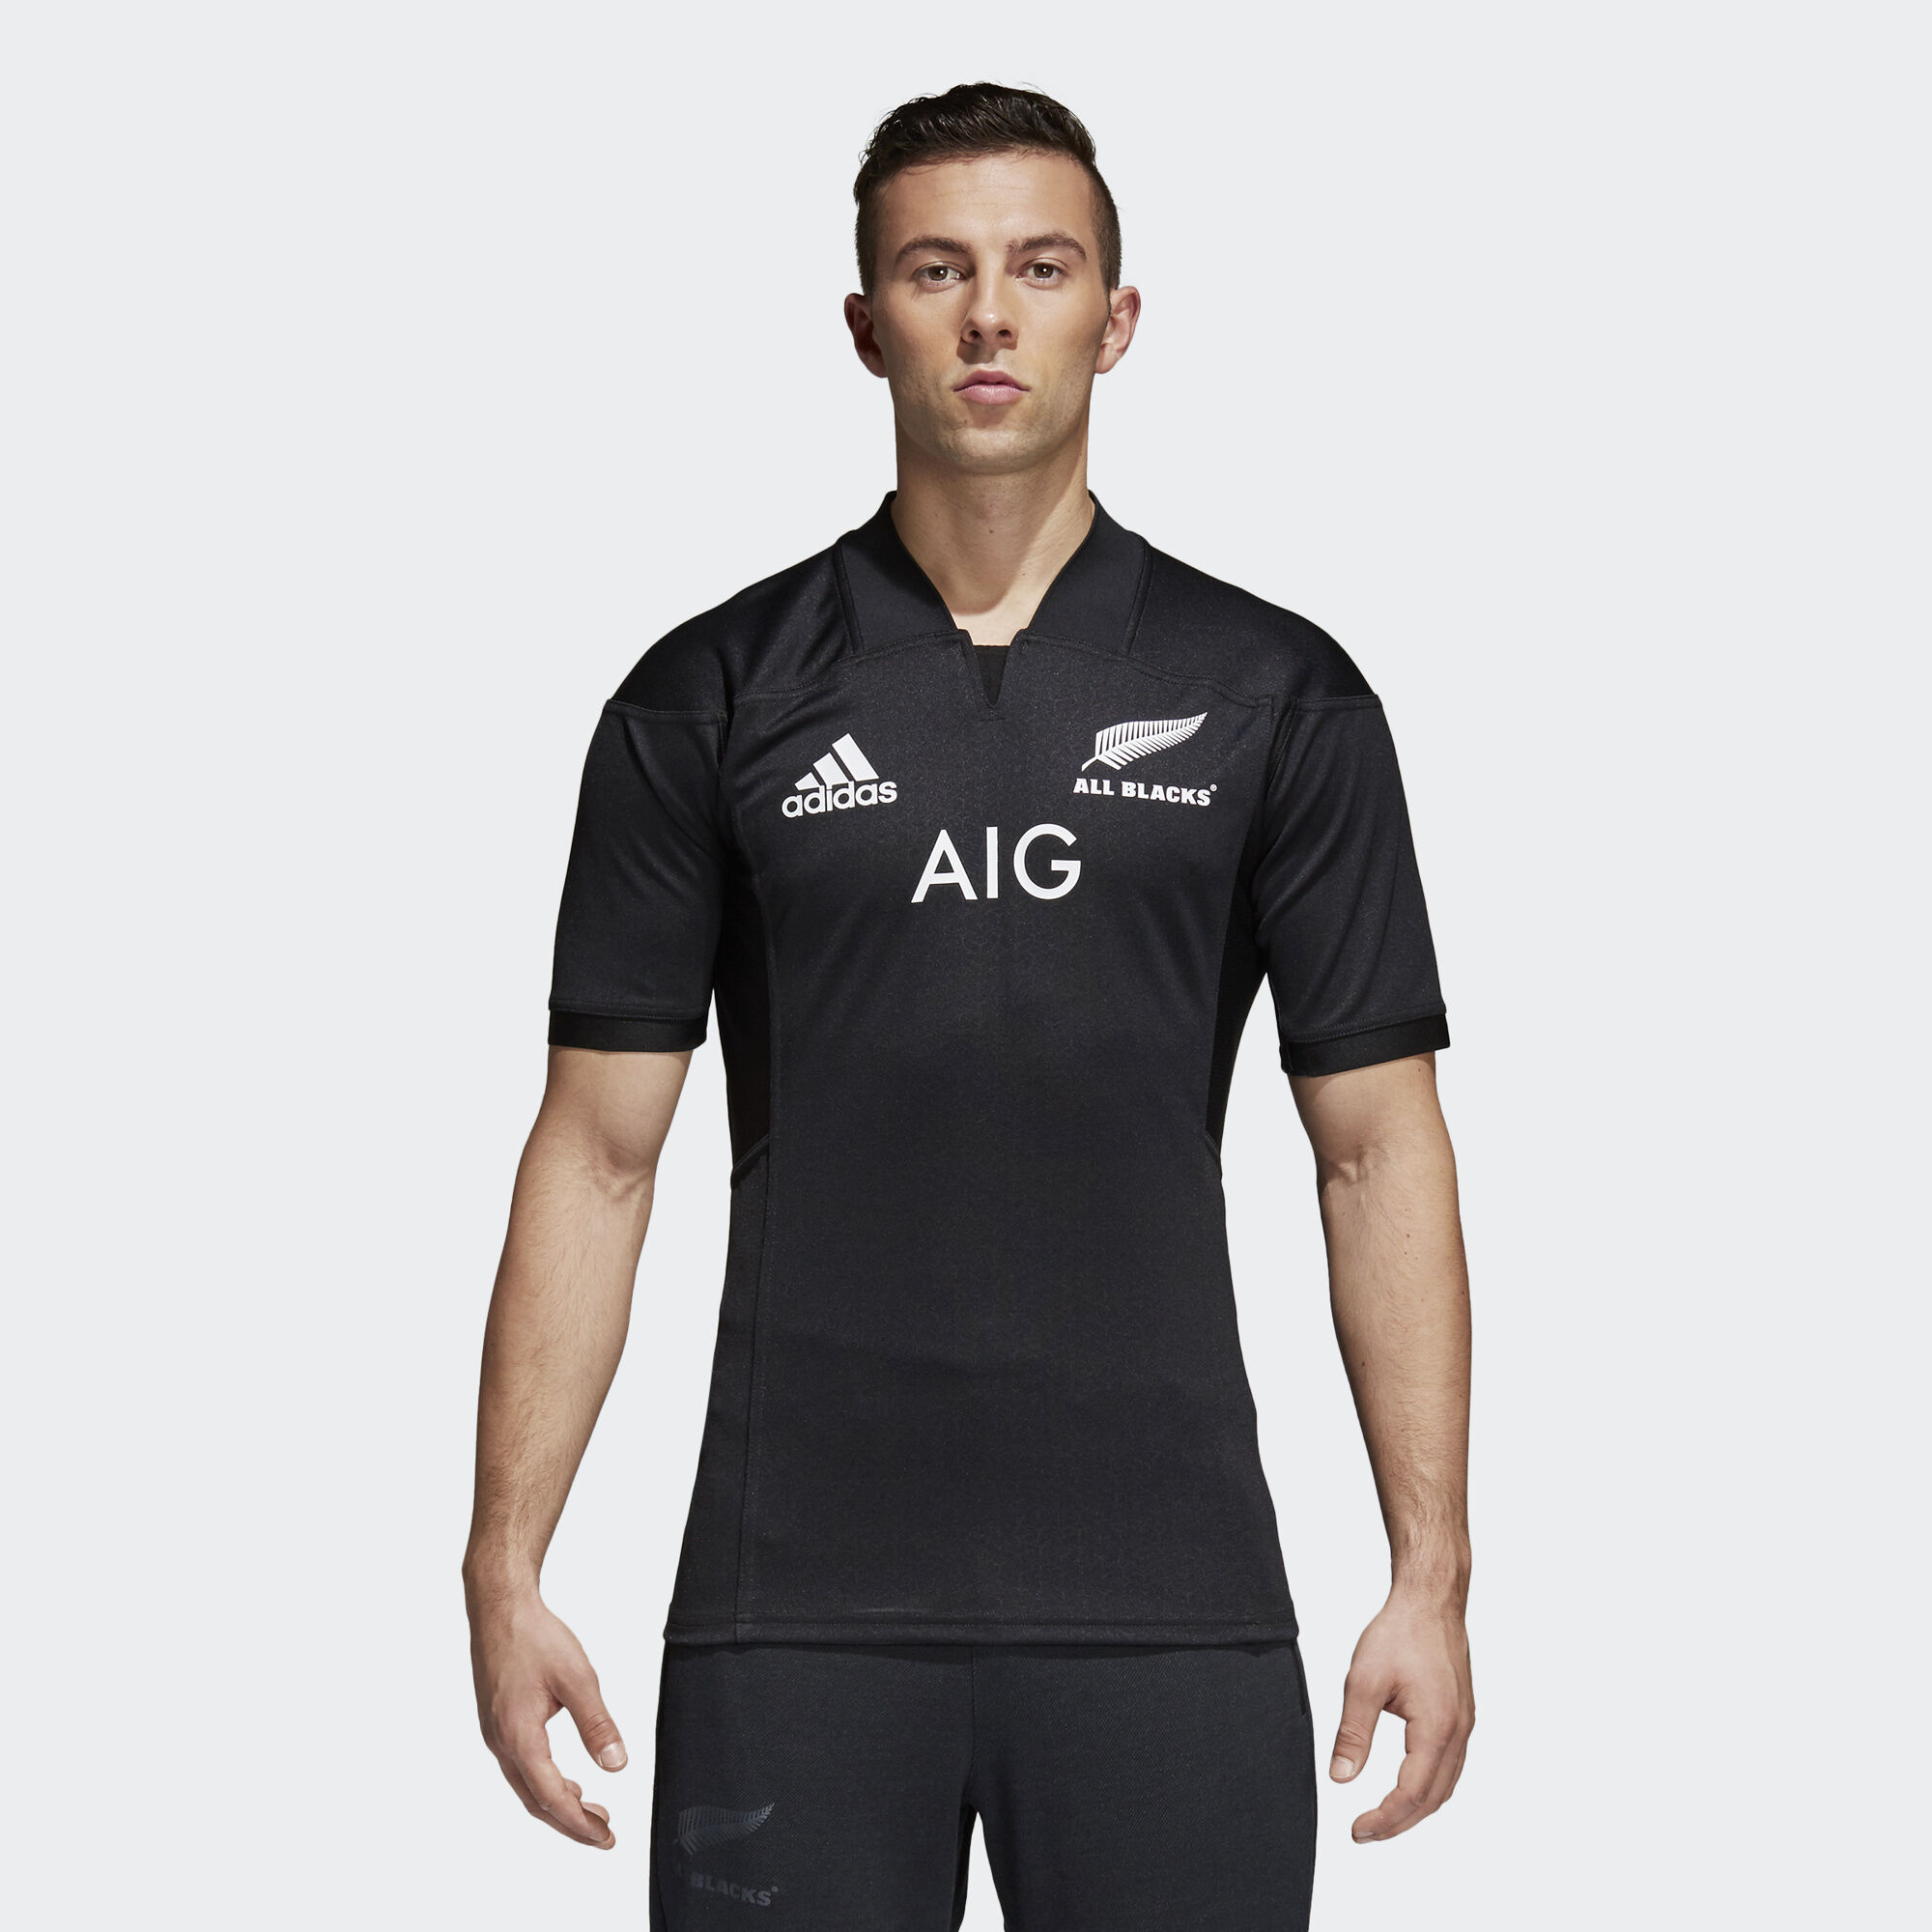 maillot all blacks domicile replica noir adidas adidas france. Black Bedroom Furniture Sets. Home Design Ideas